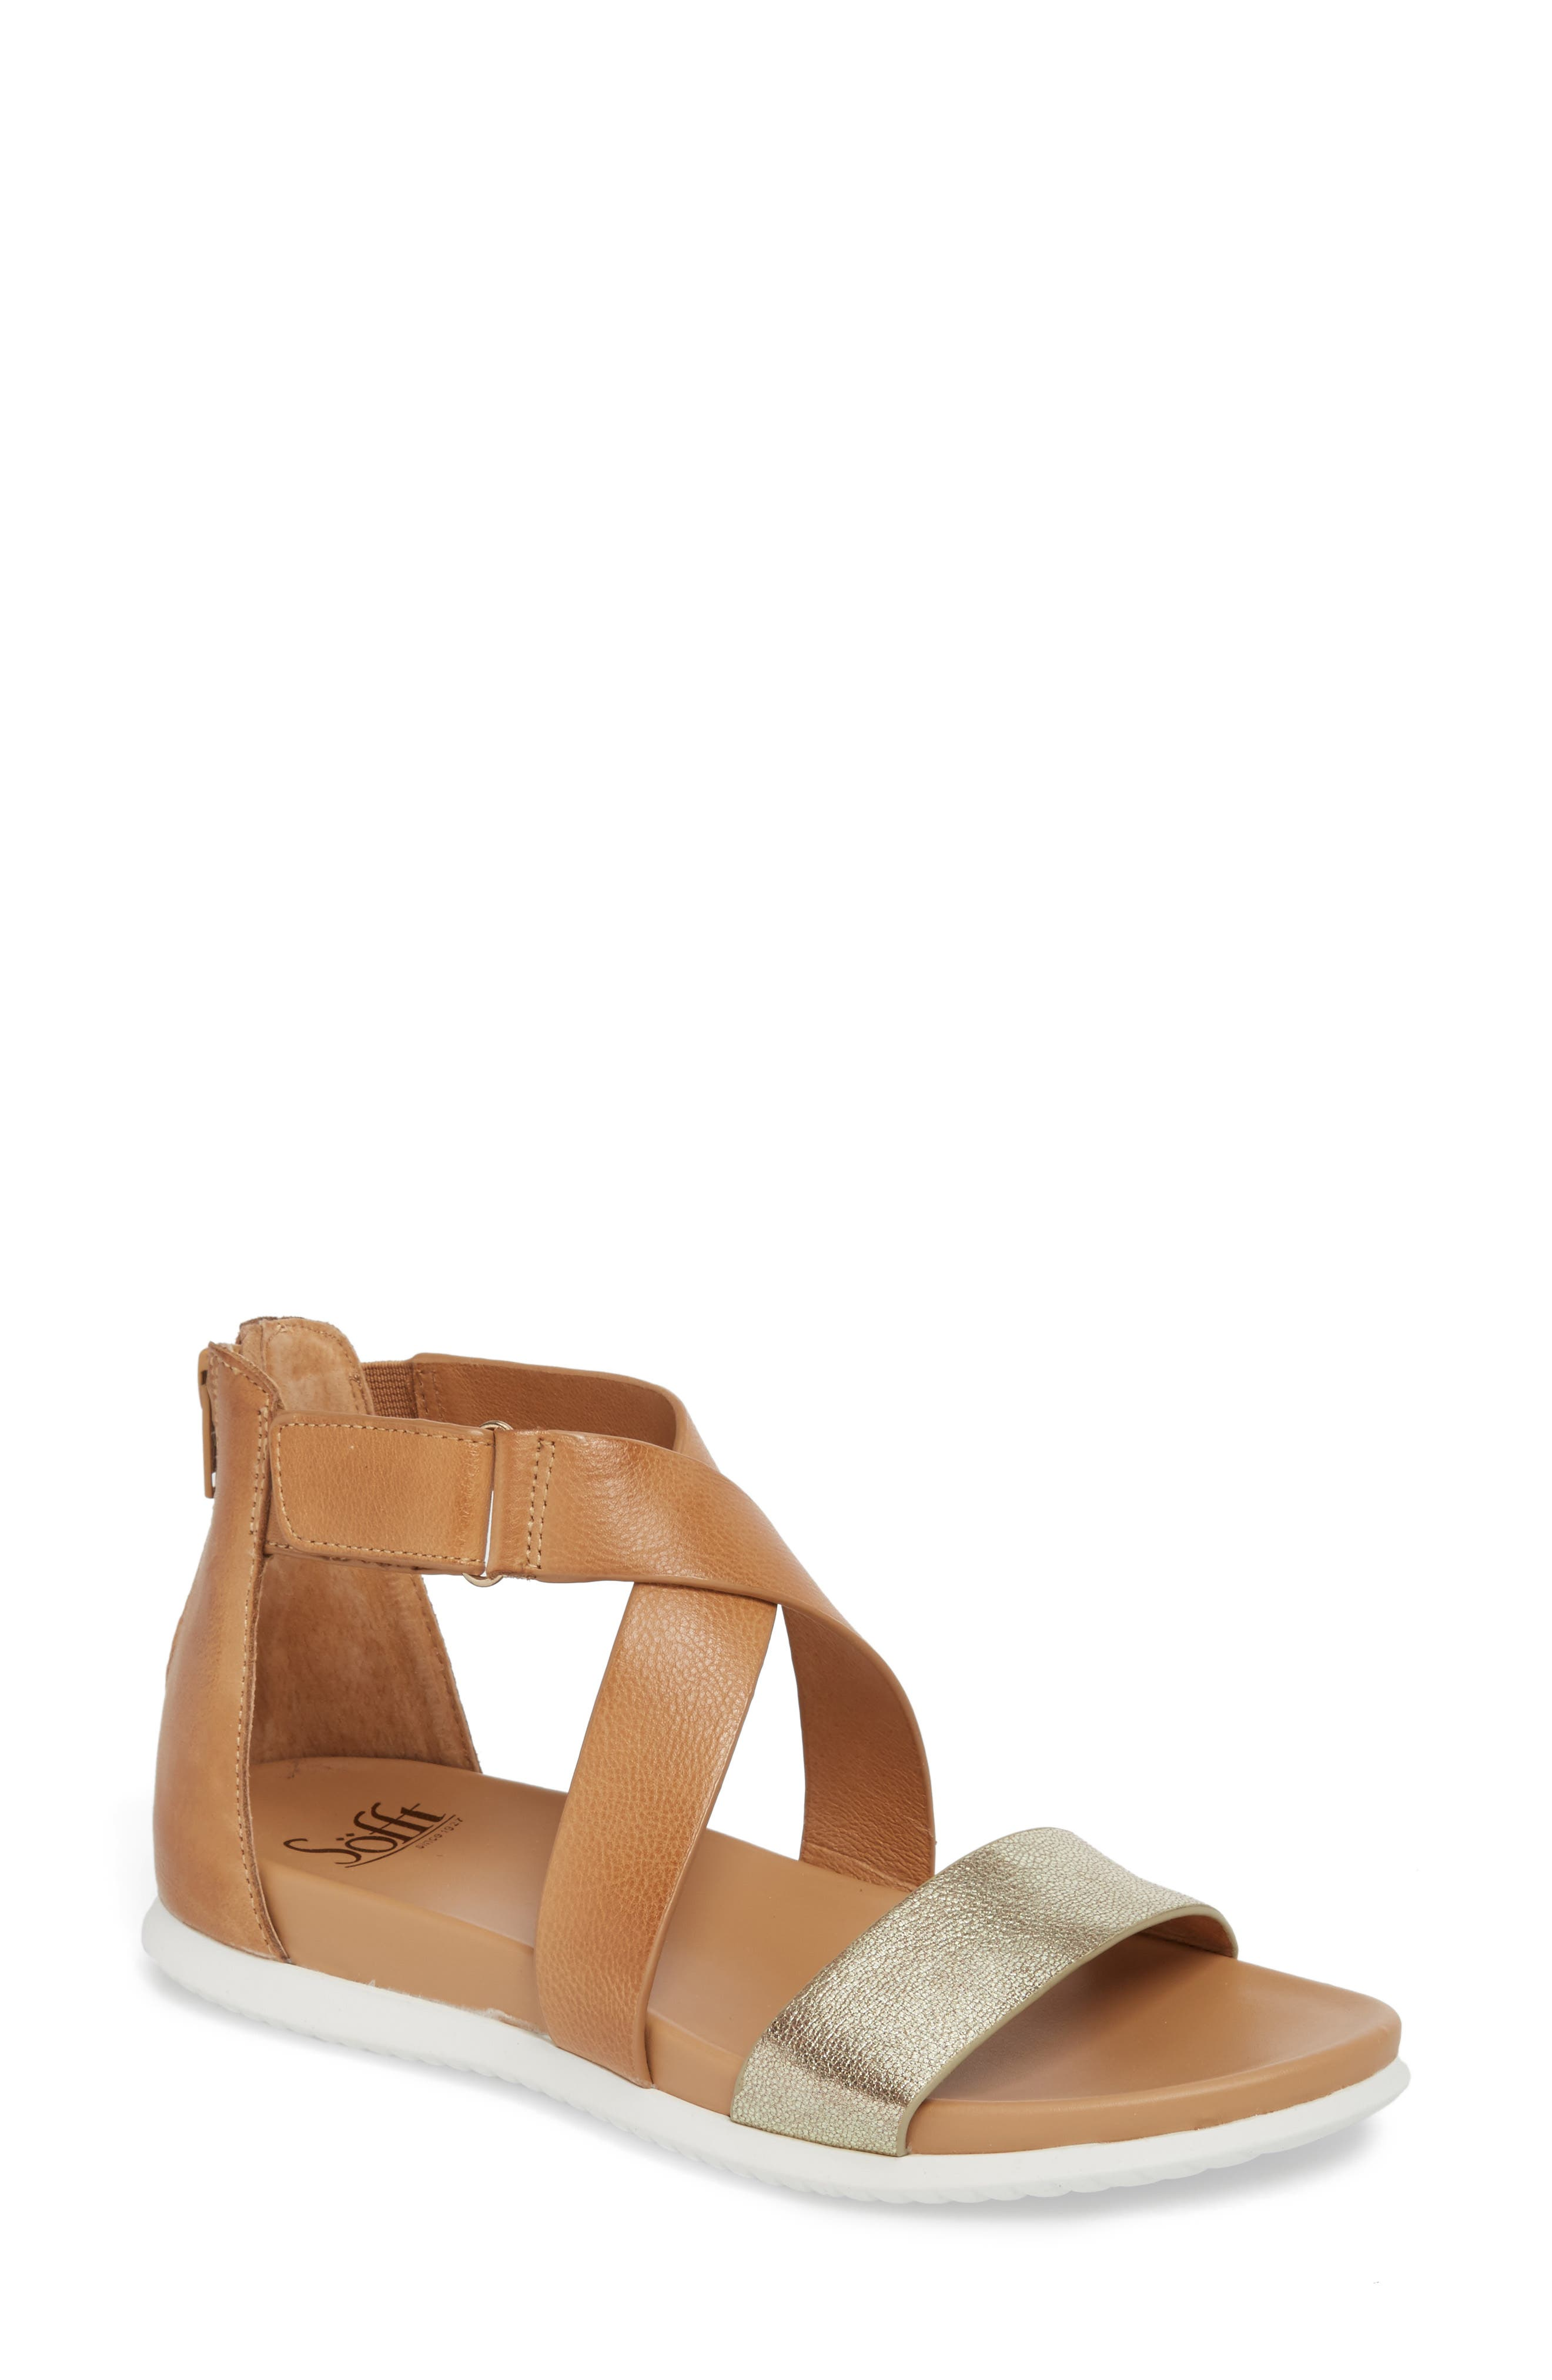 Purchase Your Favorite Women Alice Olivia Gretchen Sandal Nude - G4Y0481800